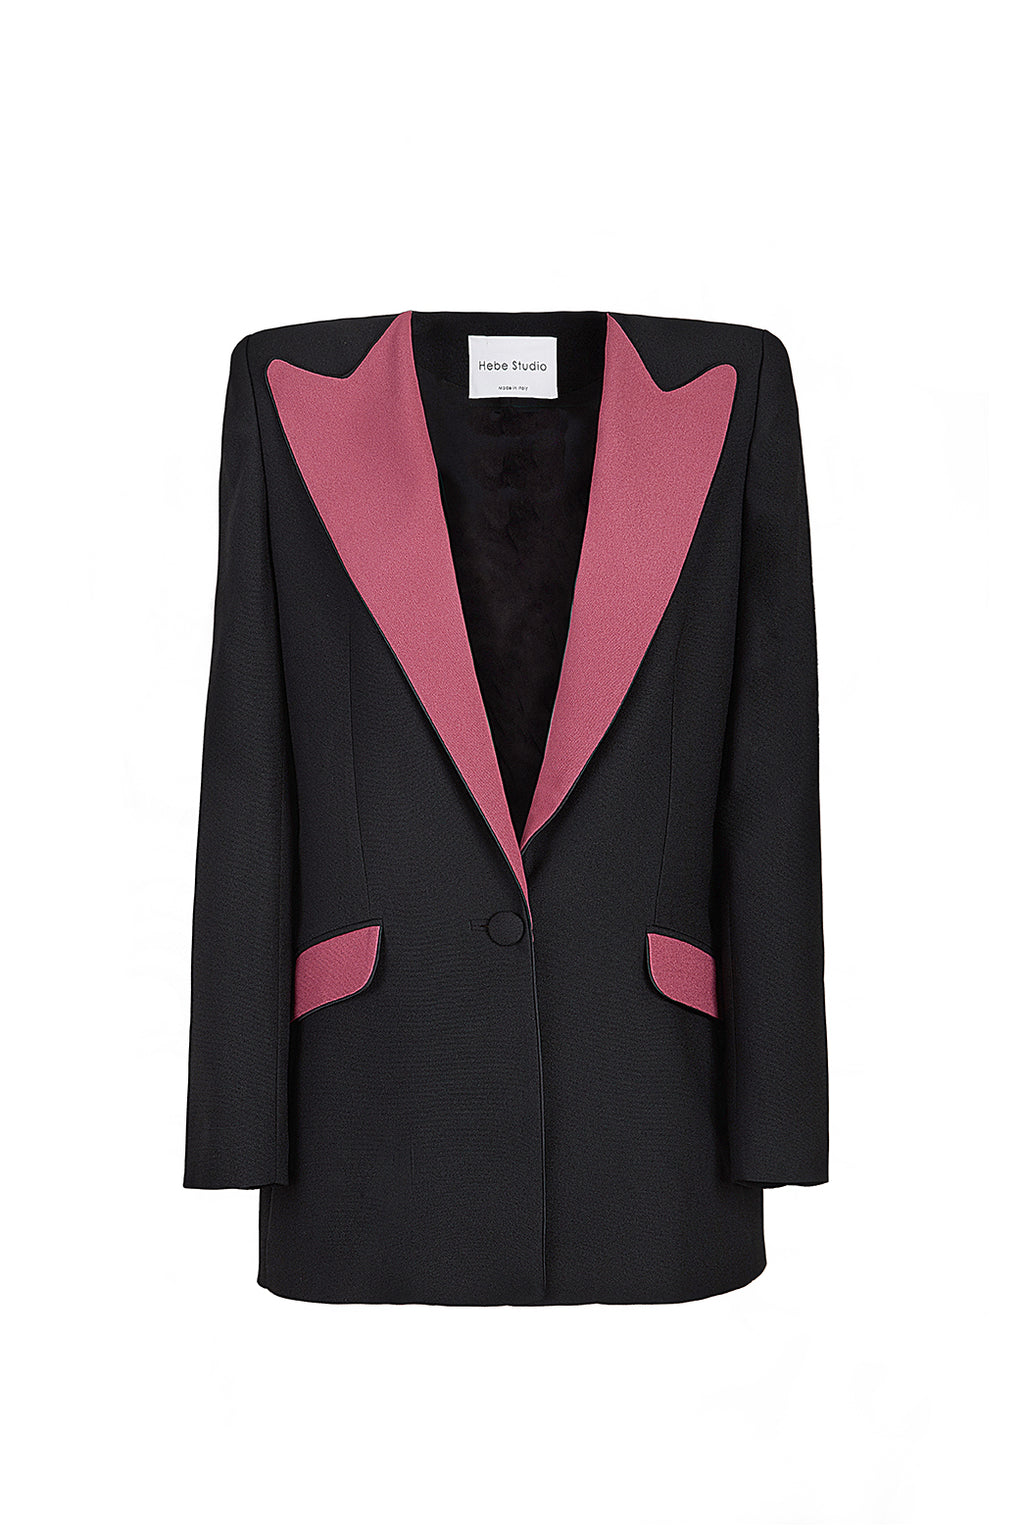 The Black & Ruby Boyfriend Blazer